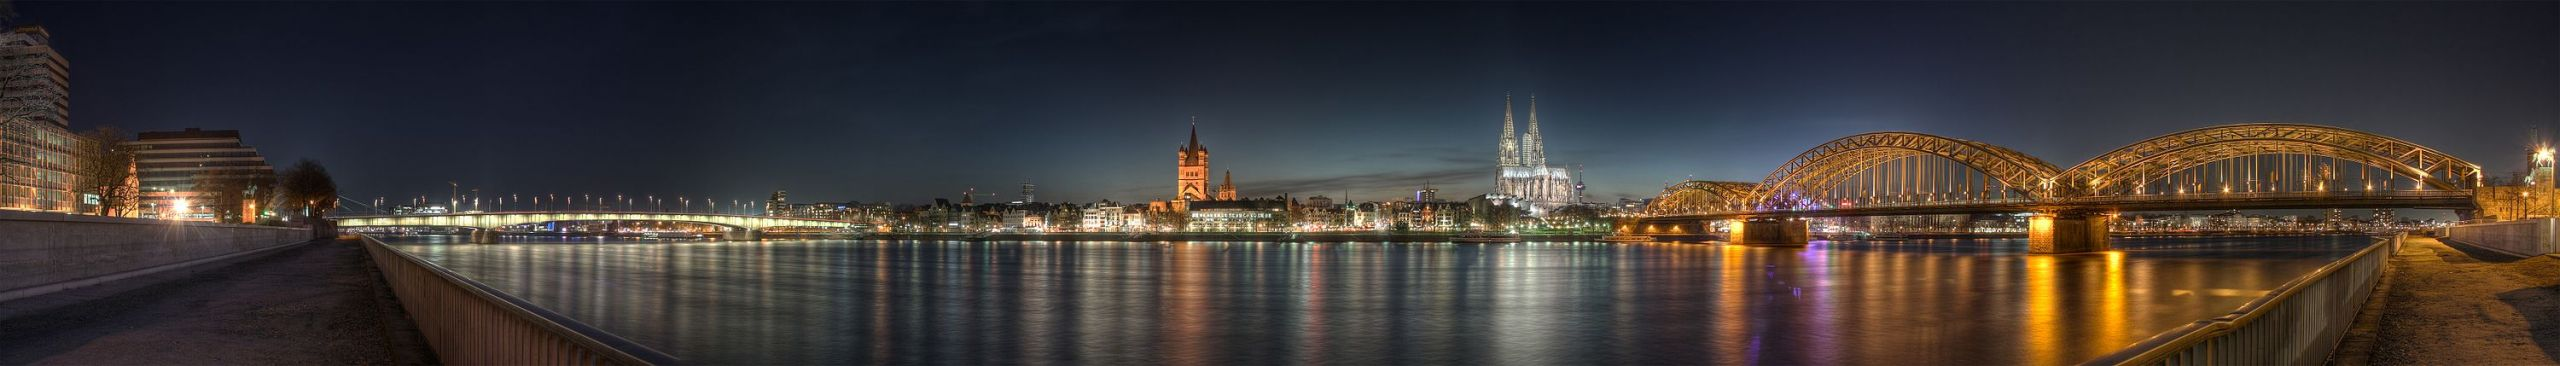 3000px Cologne Panoramic Image of the old town at dusk